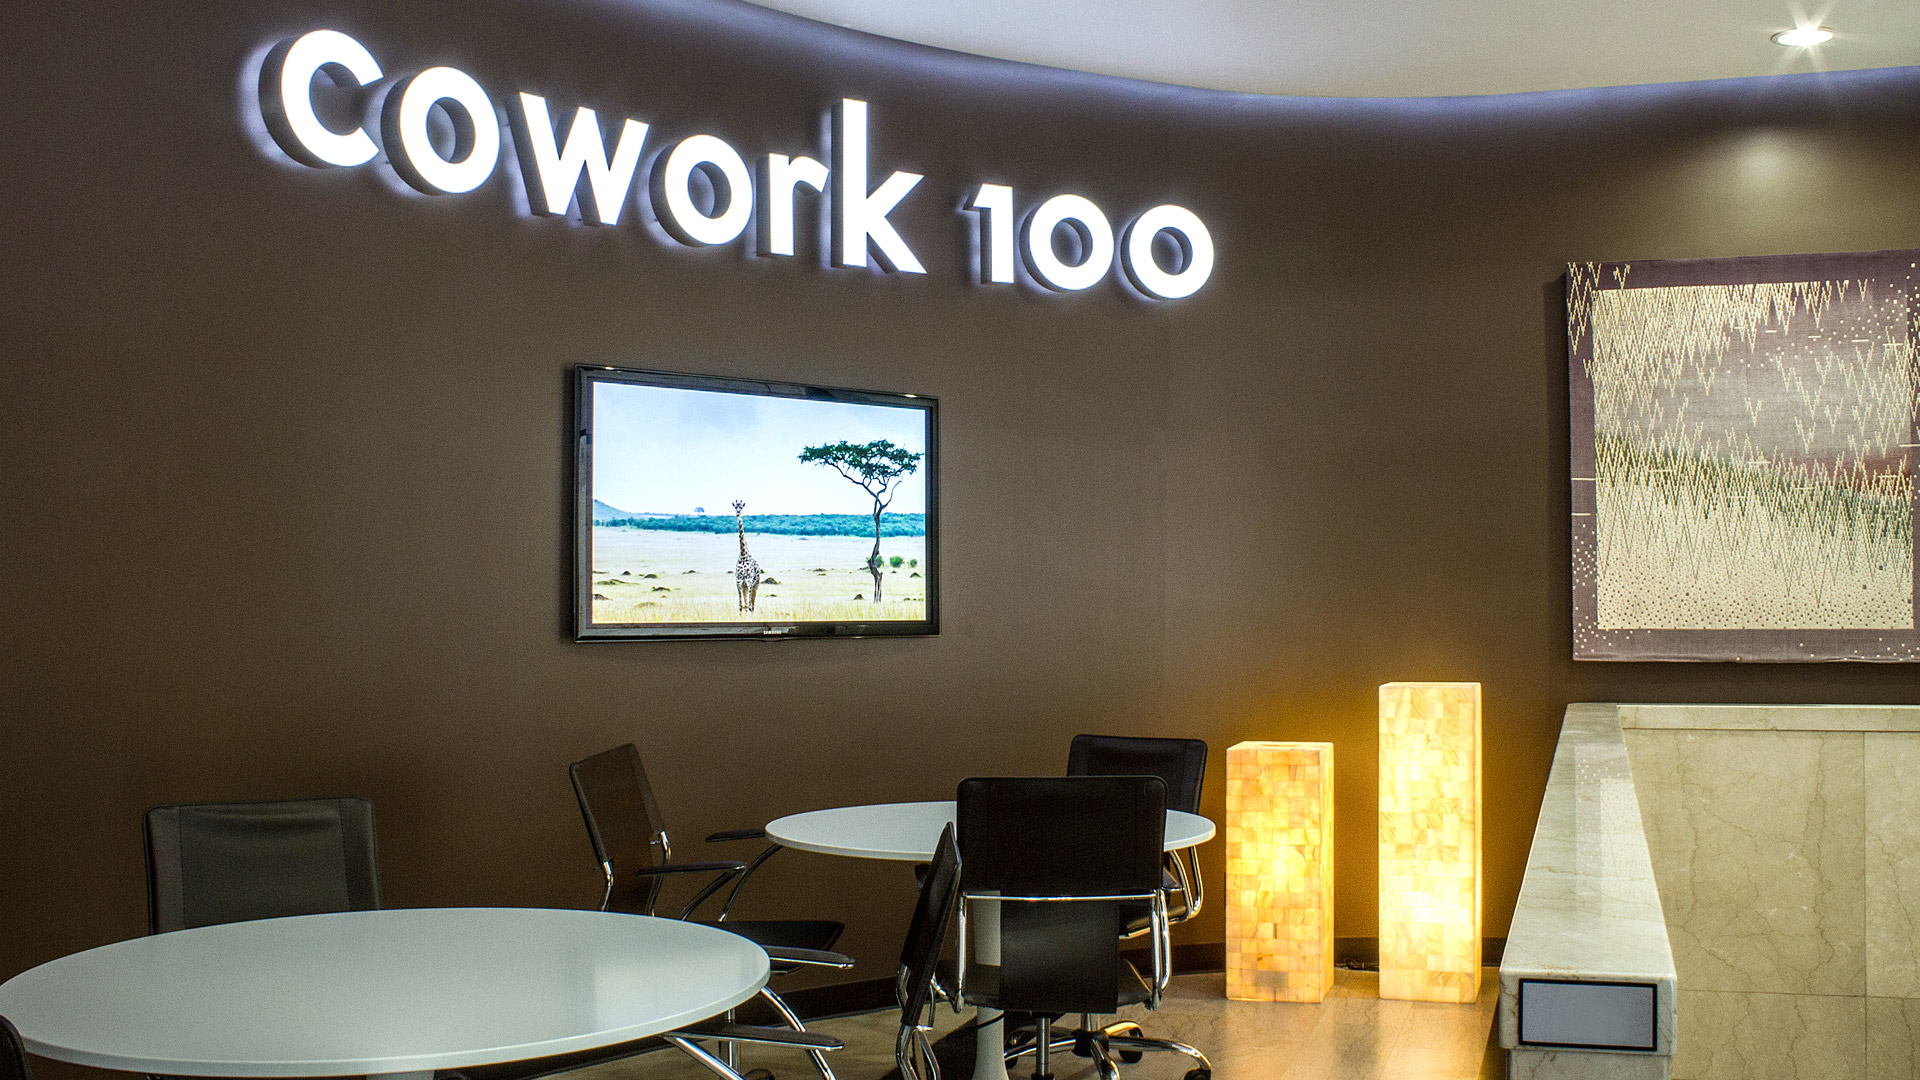 CoWork-1